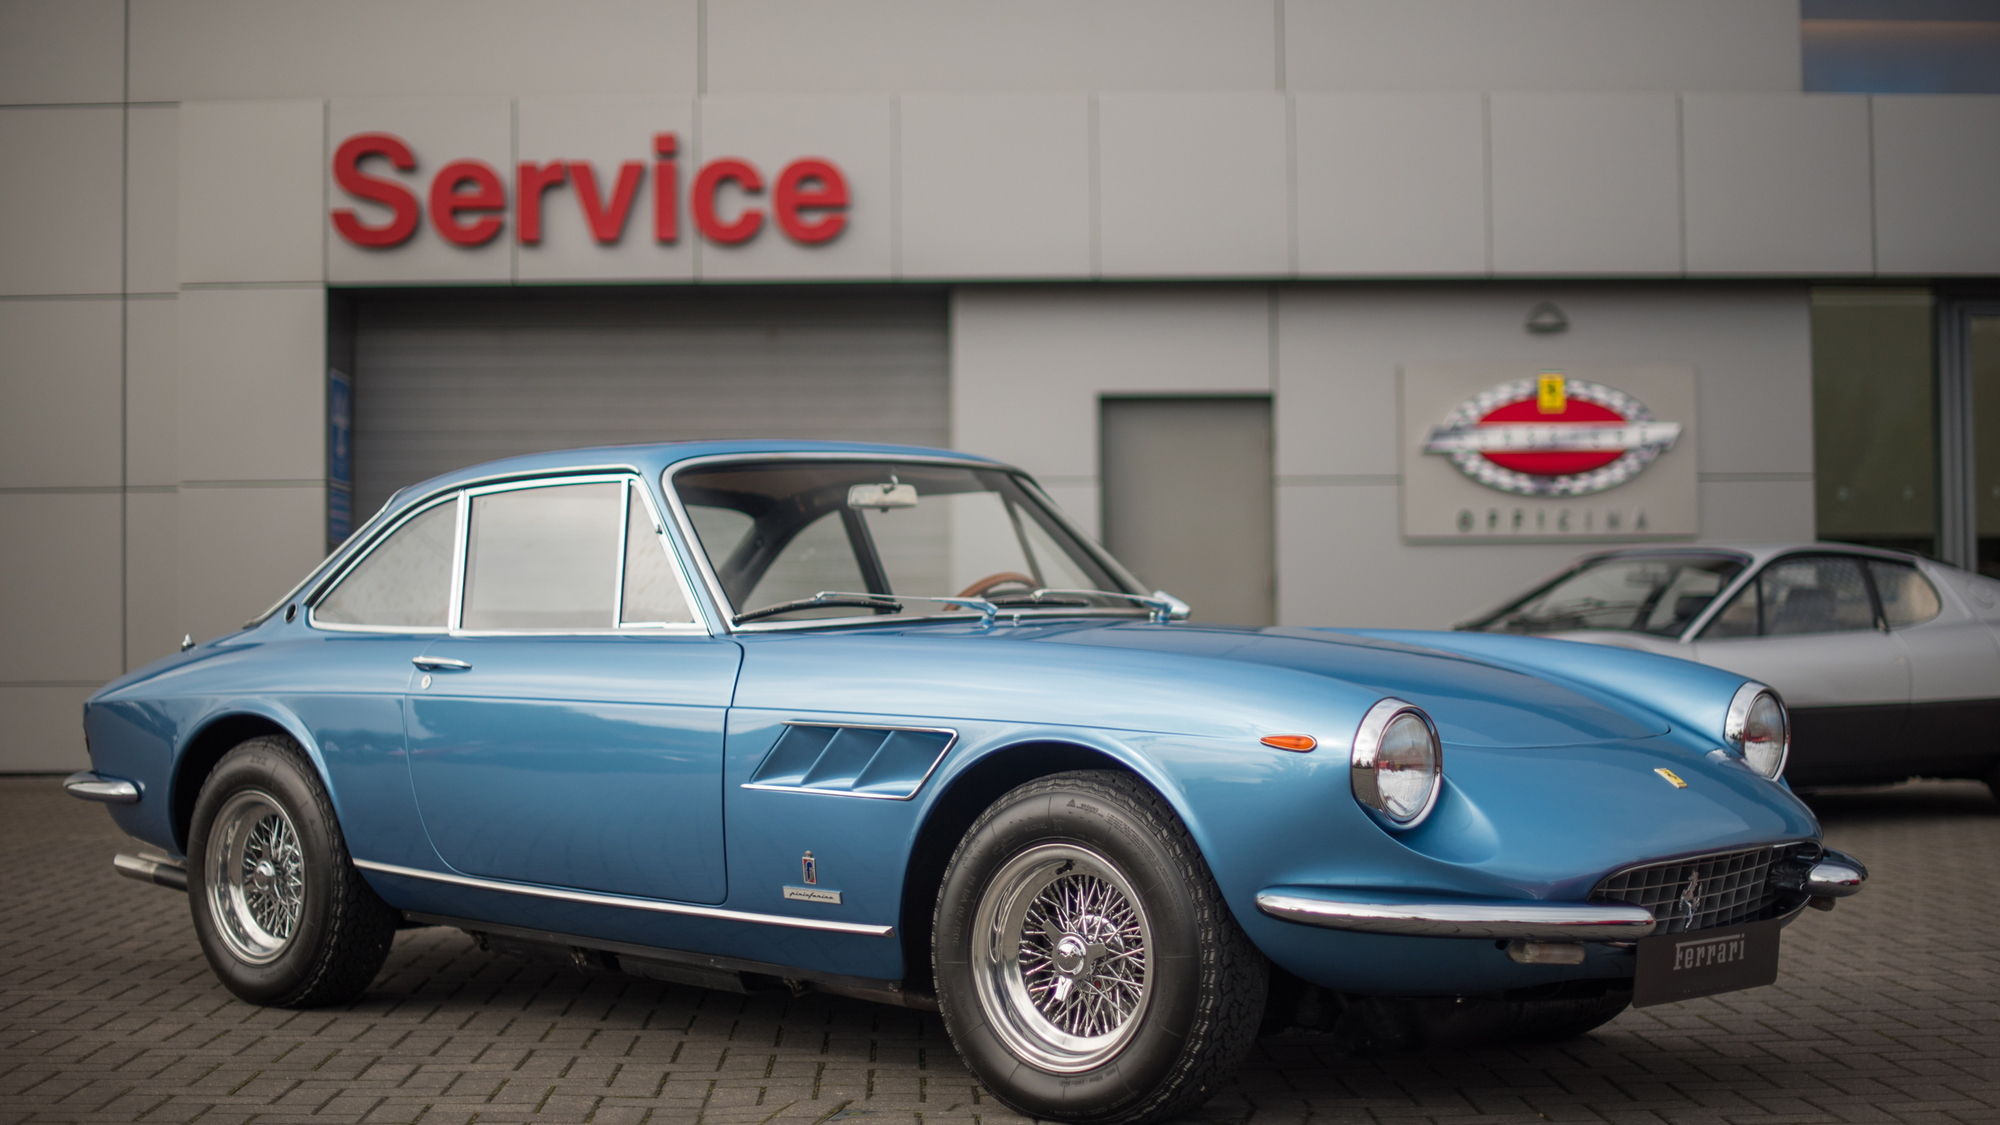 Ferrari Classiche Authorised Workshops